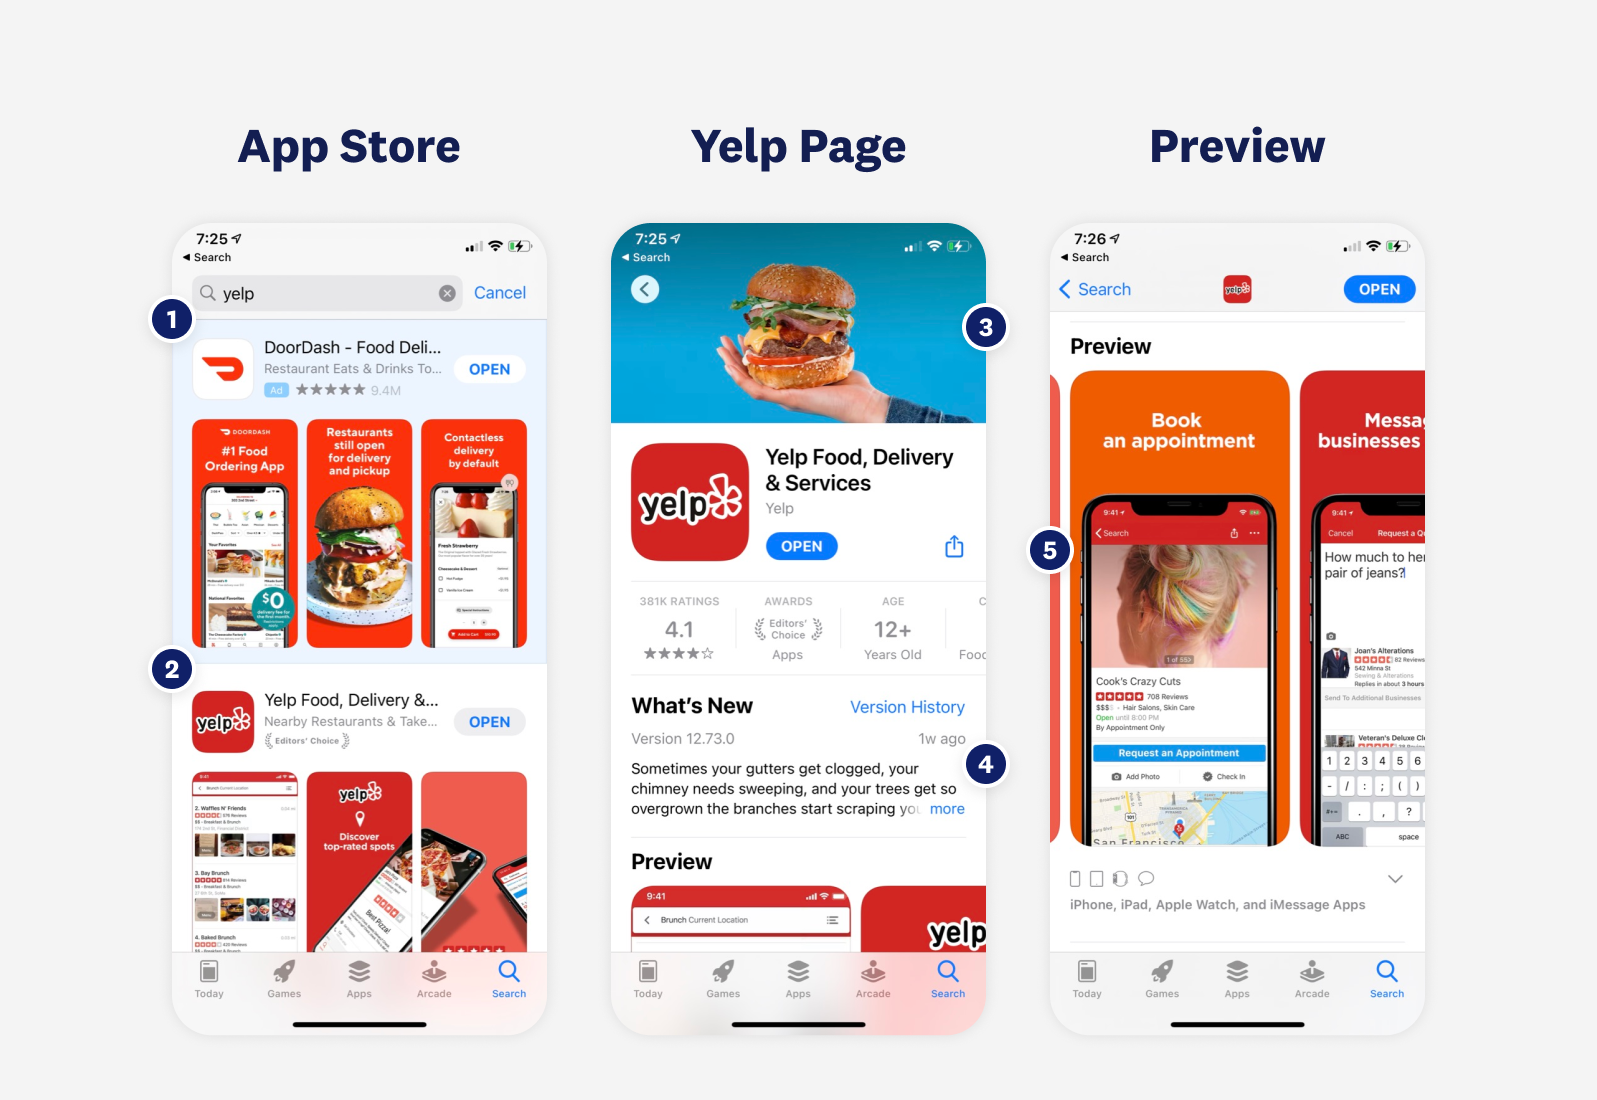 Yelp on the app store